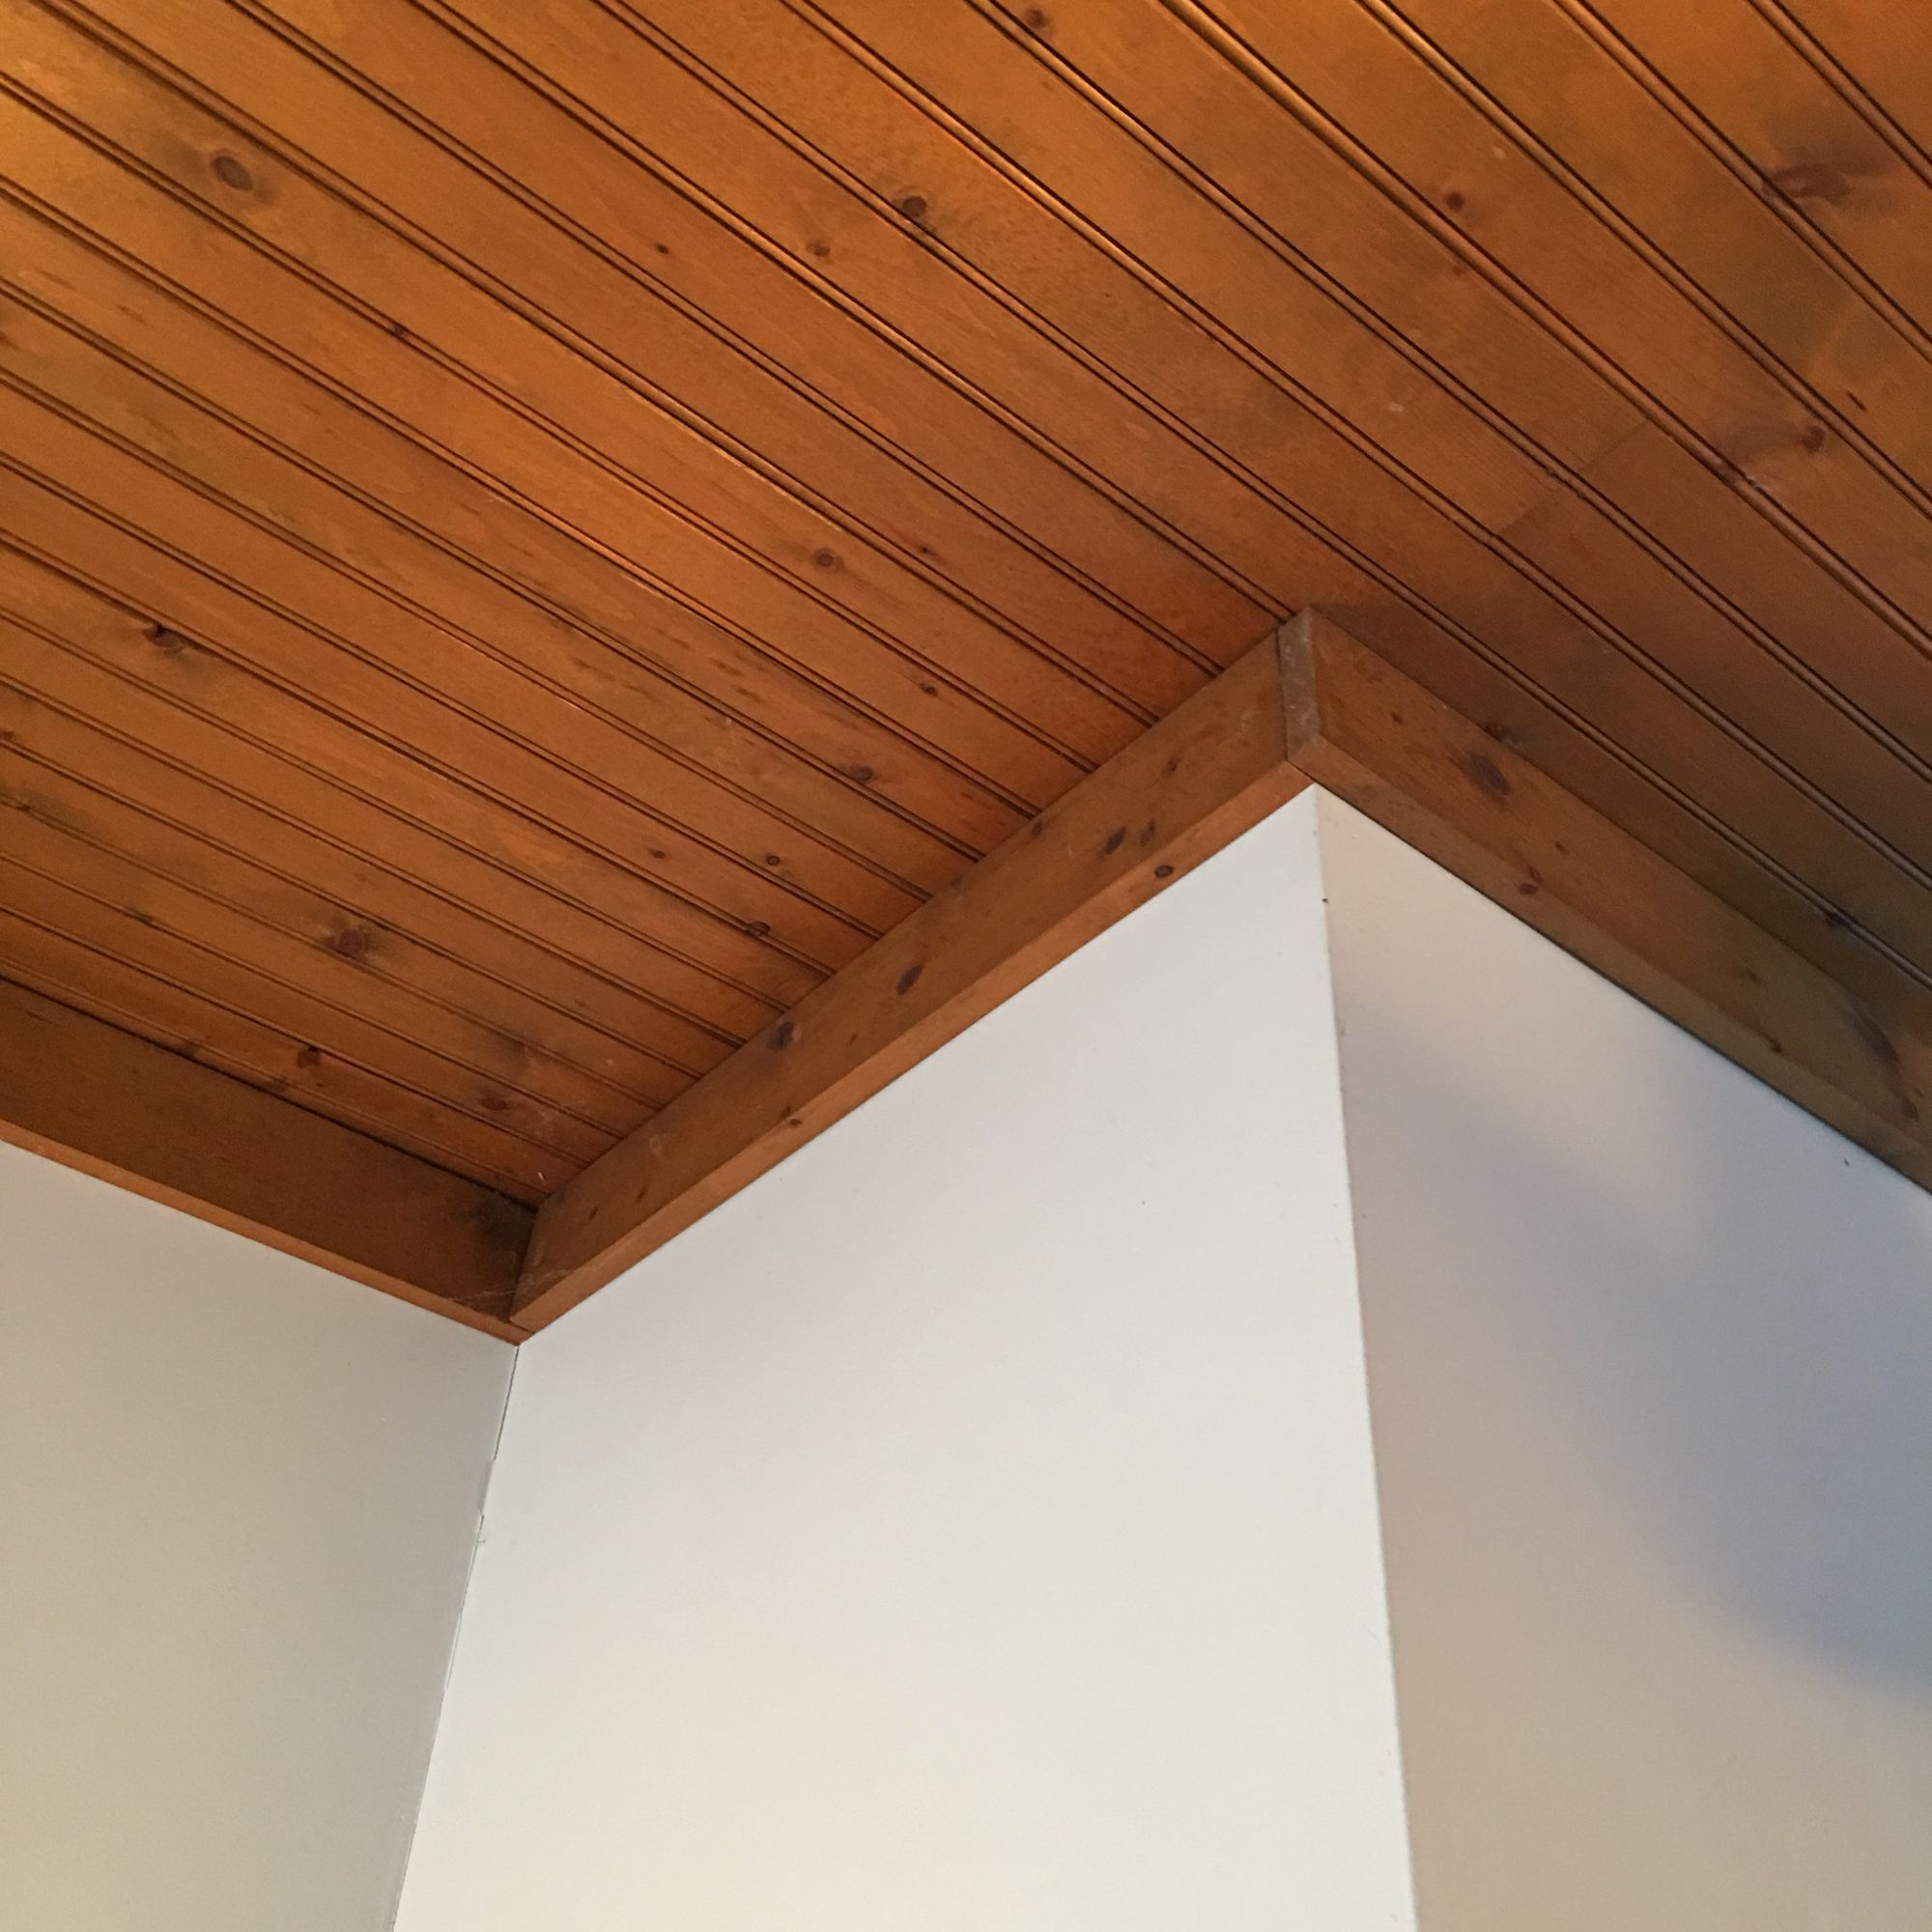 Knotty Pine Bead Board Ceiling